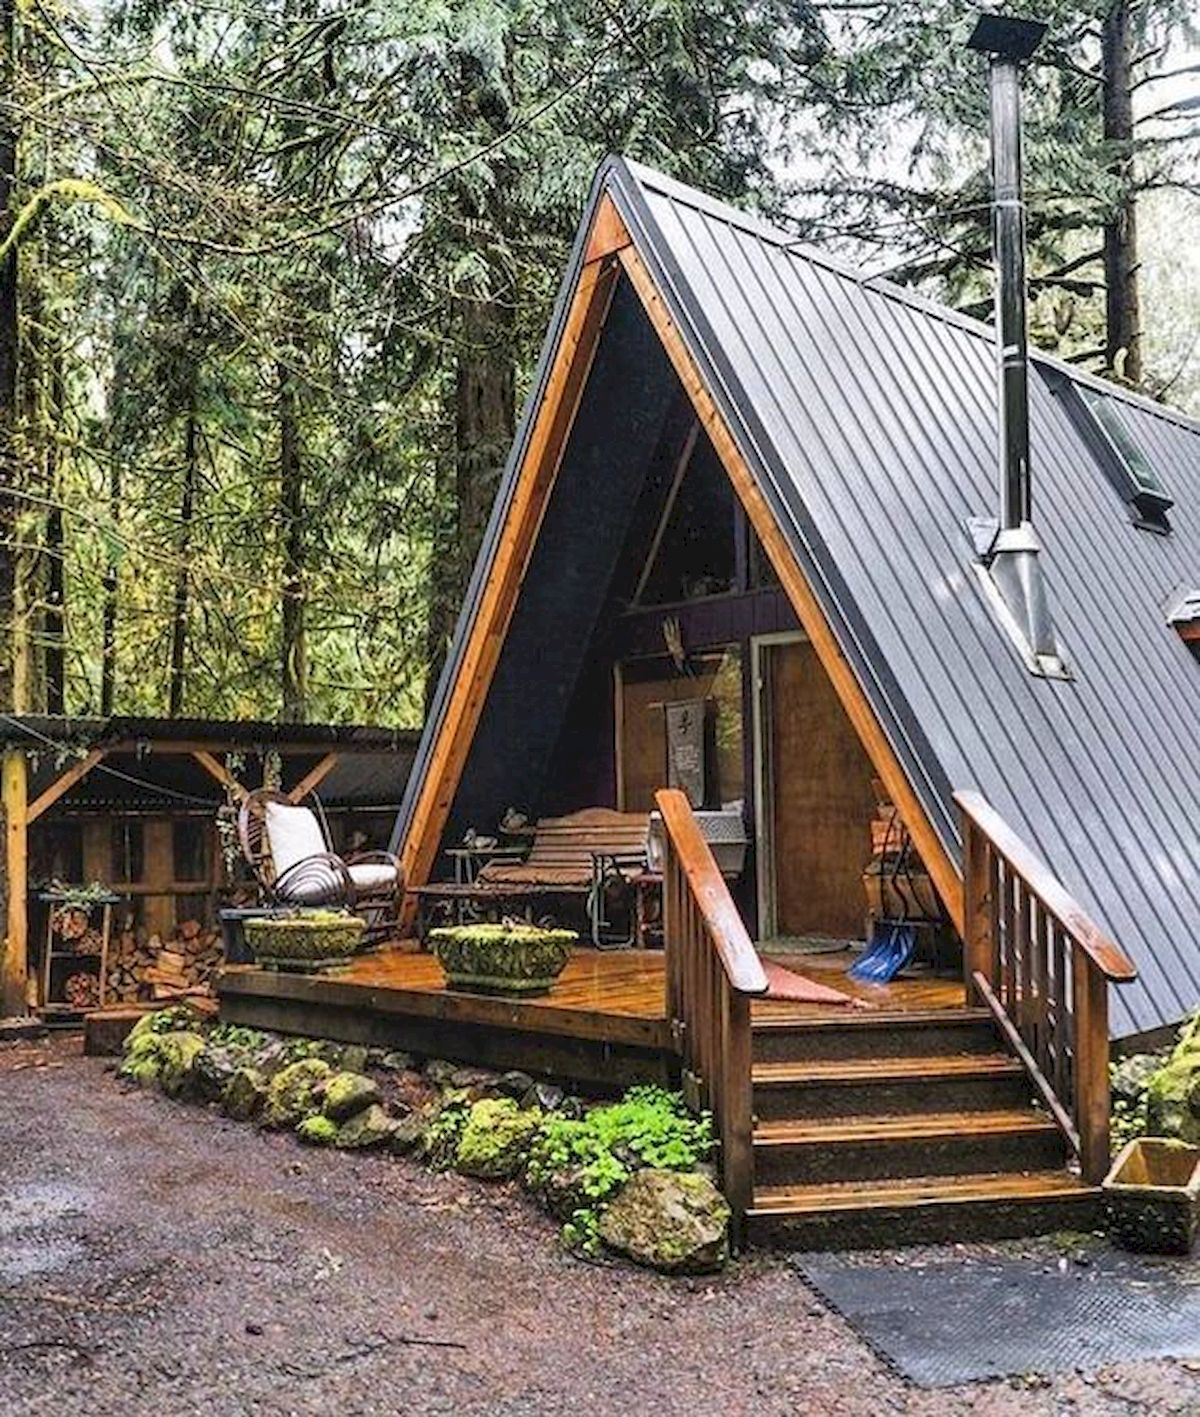 Pin By Rebecca St George On Ideas De Jardines Building A Tiny House Small Log Cabin Log Cabin Homes